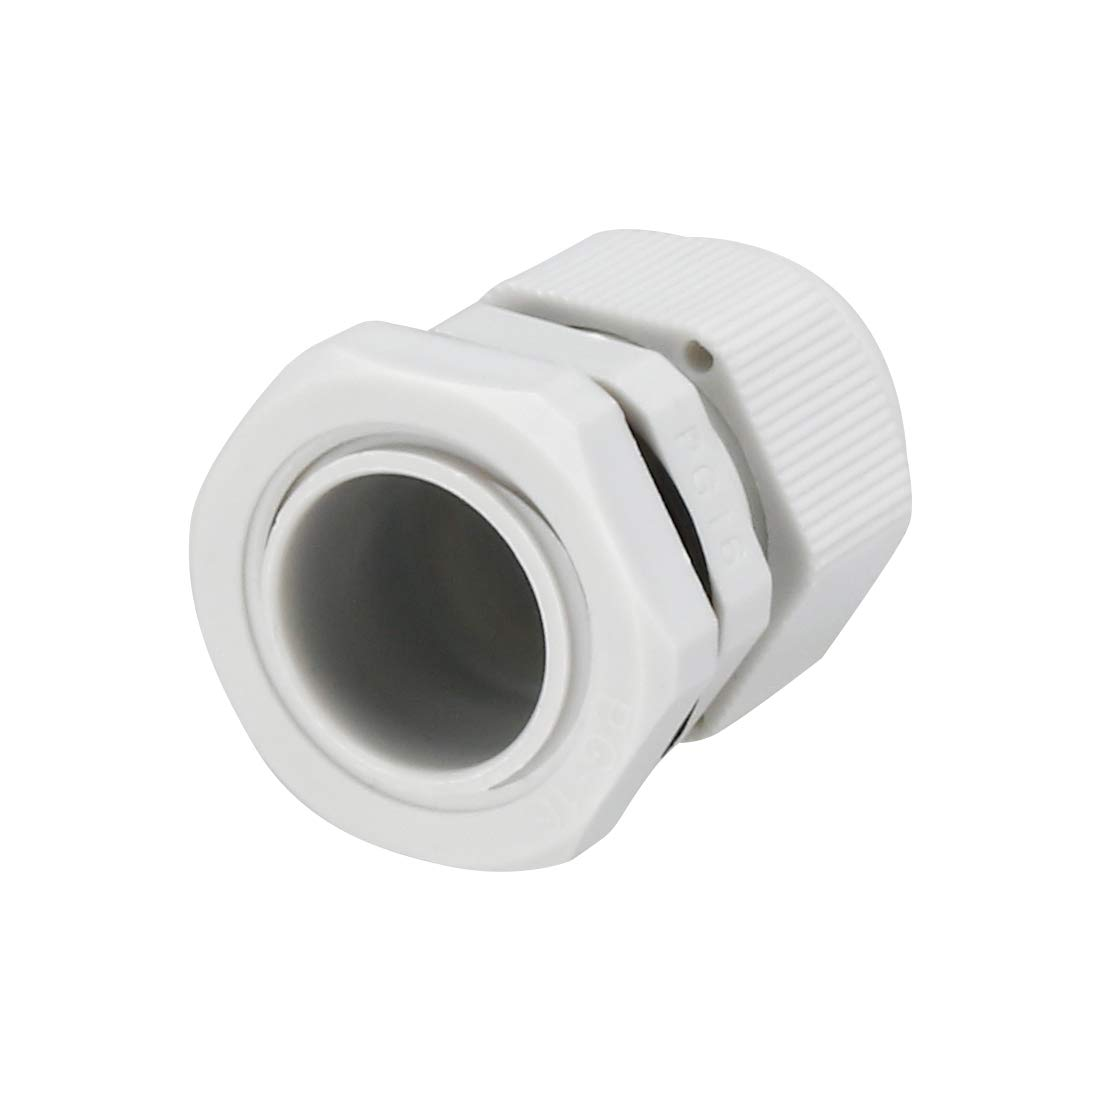 uxcell/® Black PG13.5 Water Resistance Cable Gland Fixing Connector Joints Fastener 100 PCS